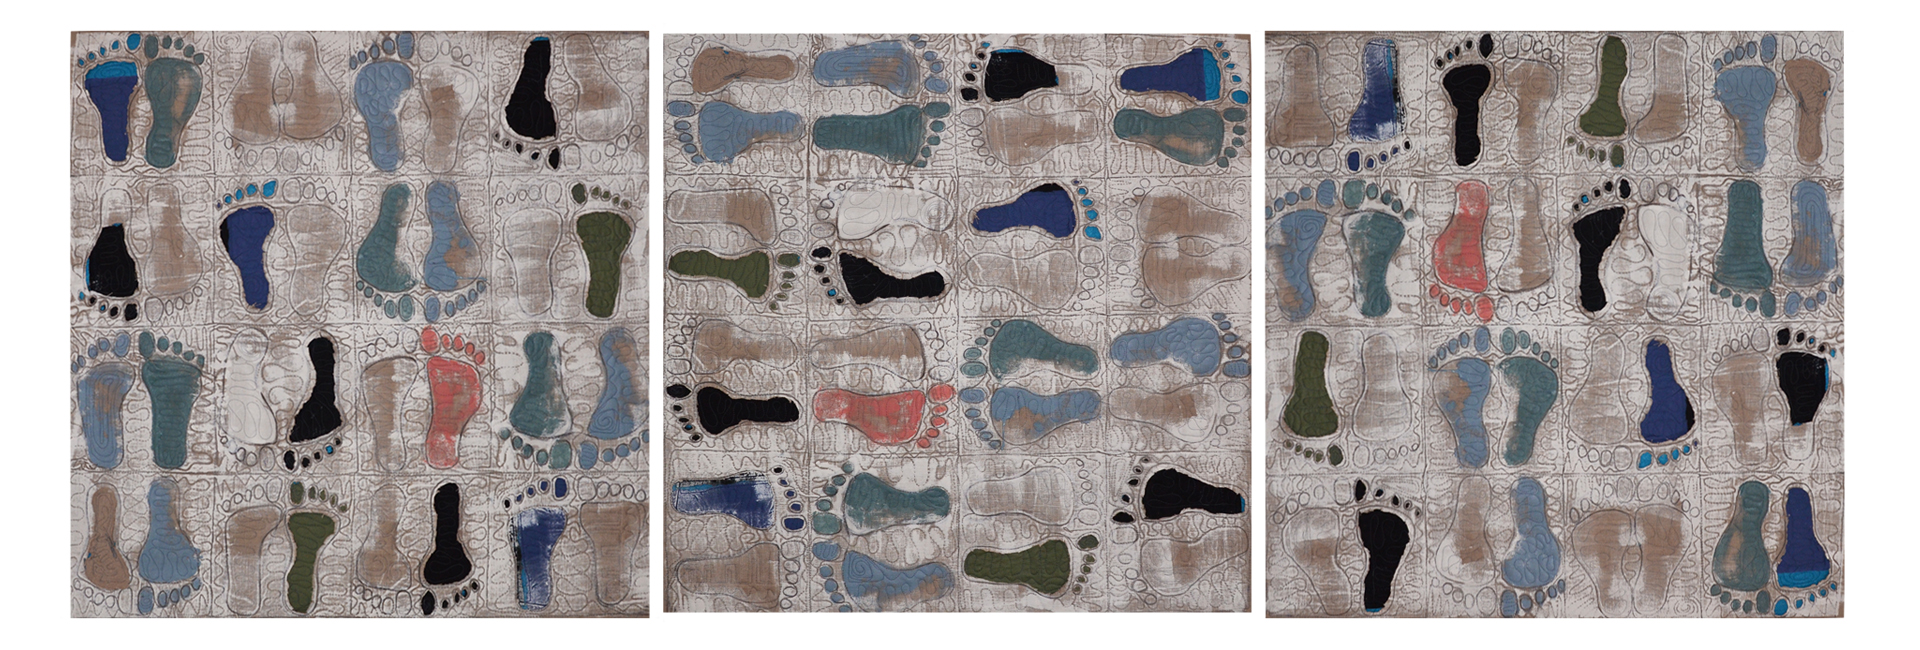 """Willis, """"Walkabout,"""" Primed Raw Linen, Acrylic, Cotton, 40"""" x 120"""", 2016"""